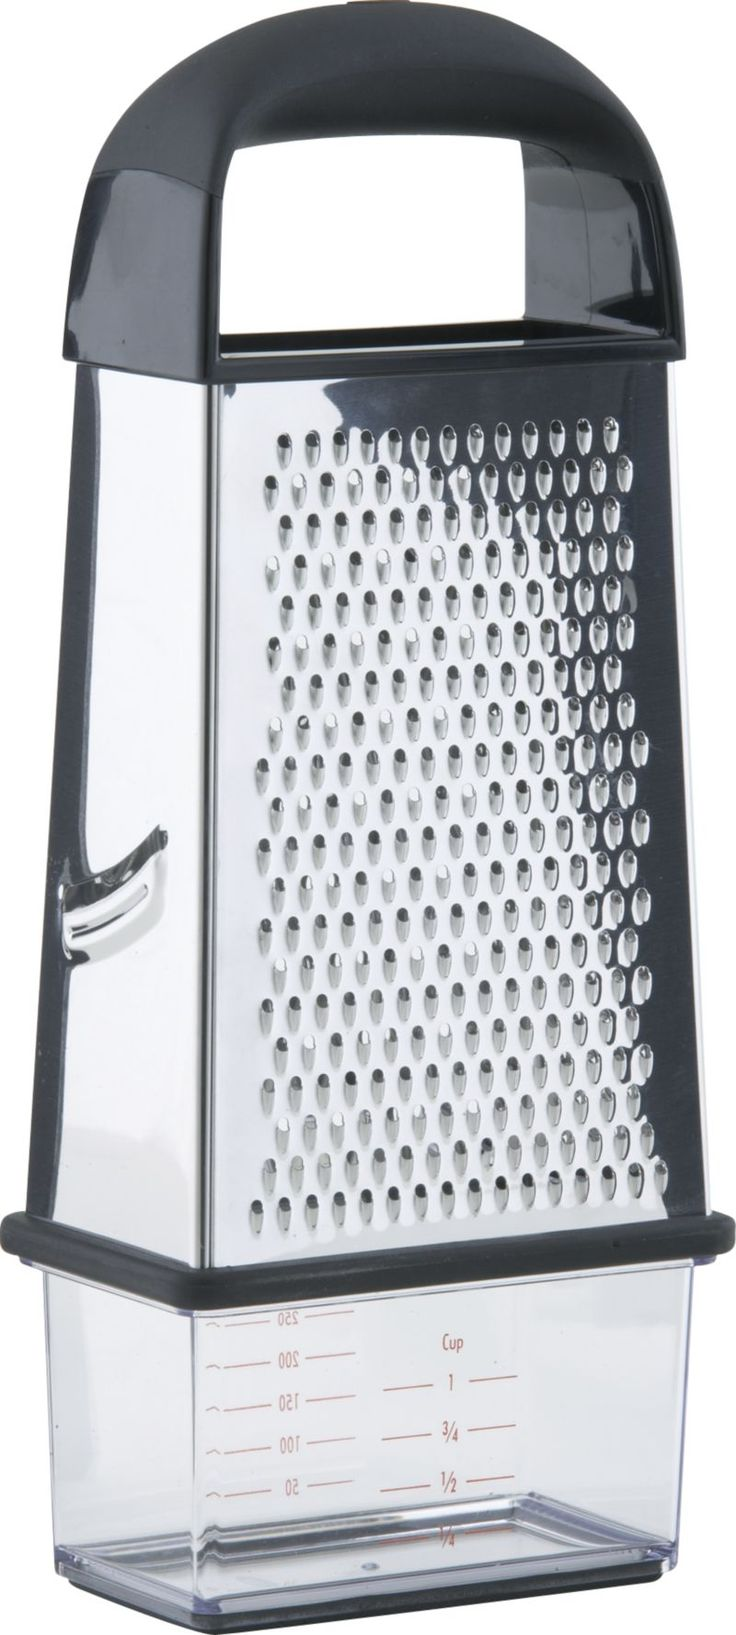 OXO® Box Grater  | Crate and Barrel Something like this I could really use.  Calliflower, or cheese...I like the catch at the bottom.  hopefully I could find one with different size holes...